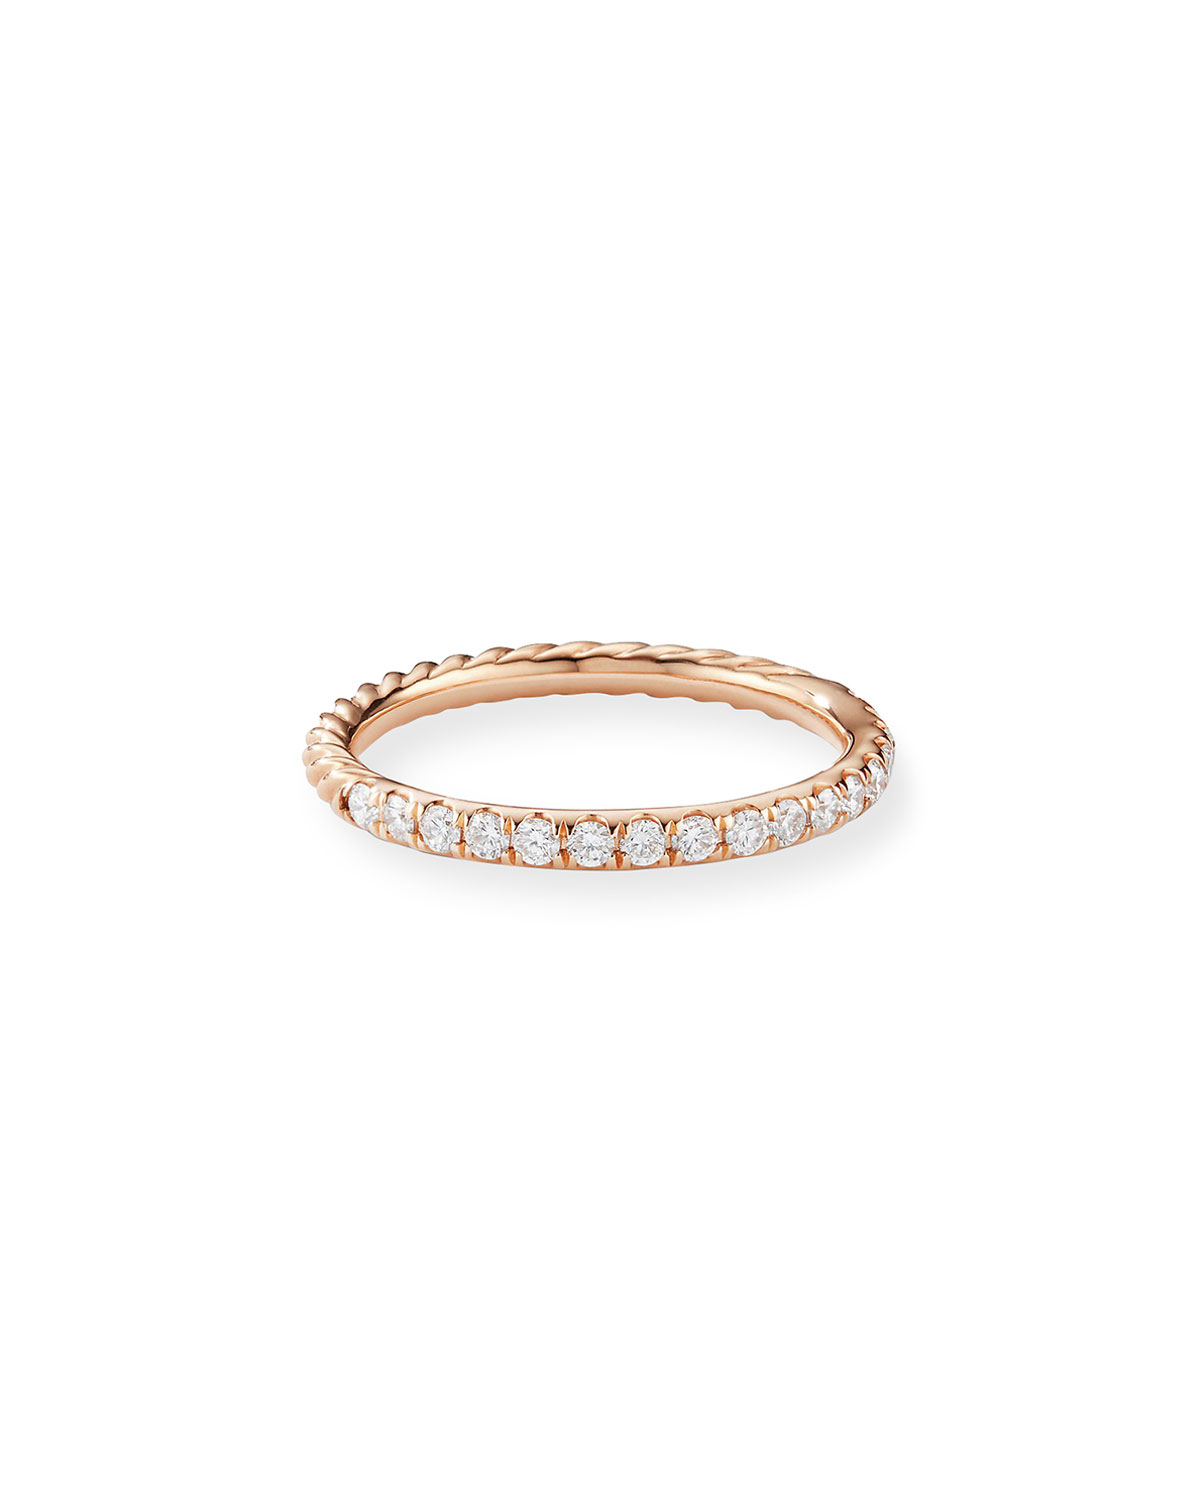 David Yurman Cable Collectibles Pave Diamond Band Ring in 18K Rose Gold, Size 5